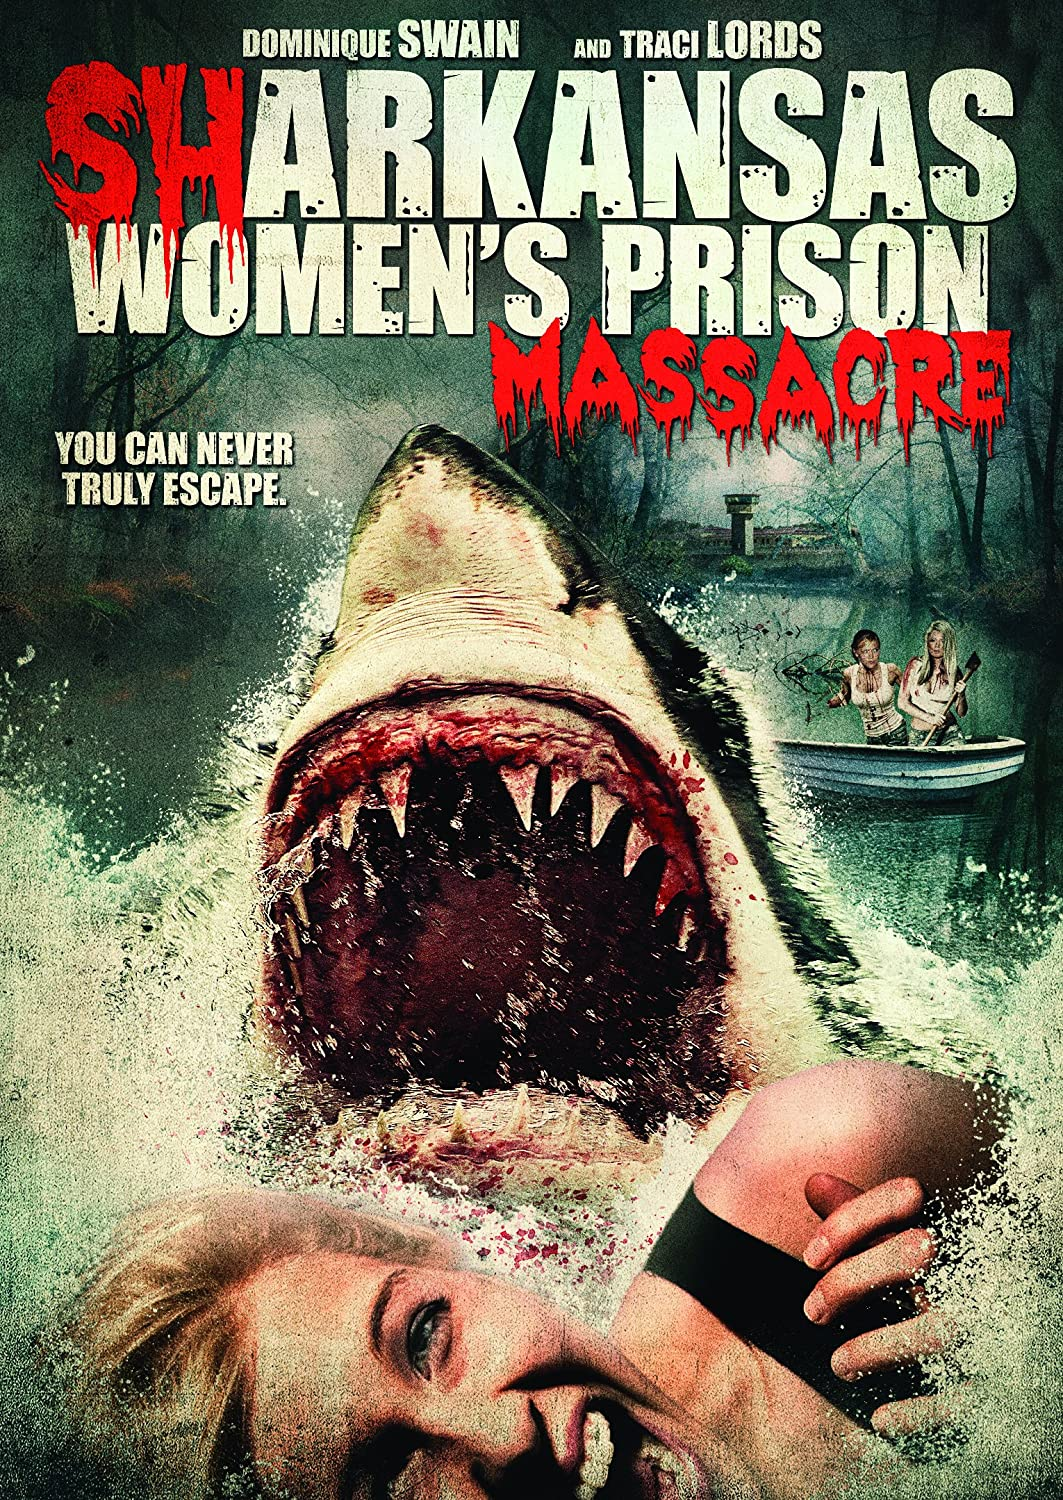 Sharkansas Womens Prison Massacre 2015 Dual Audio Hindi English 720p BluRay Full Movie Free Download